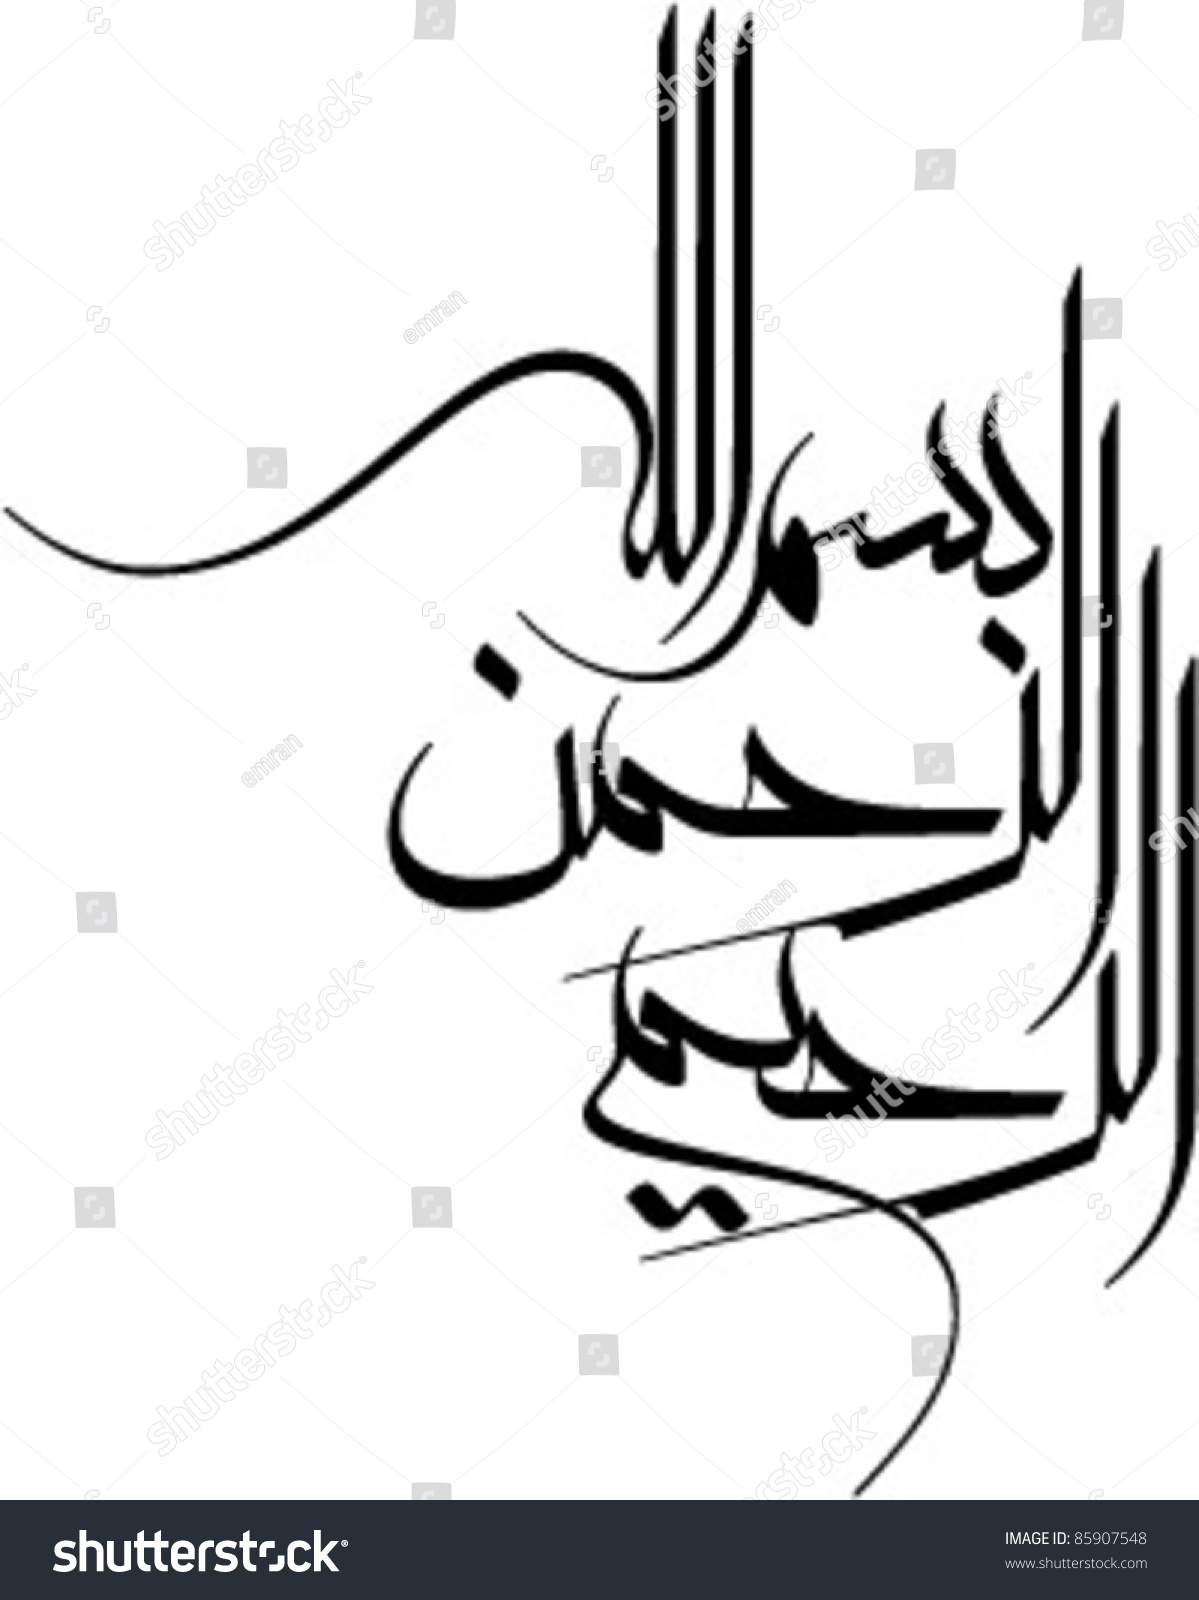 Arabic islamic calligraphy of bismillah in the name